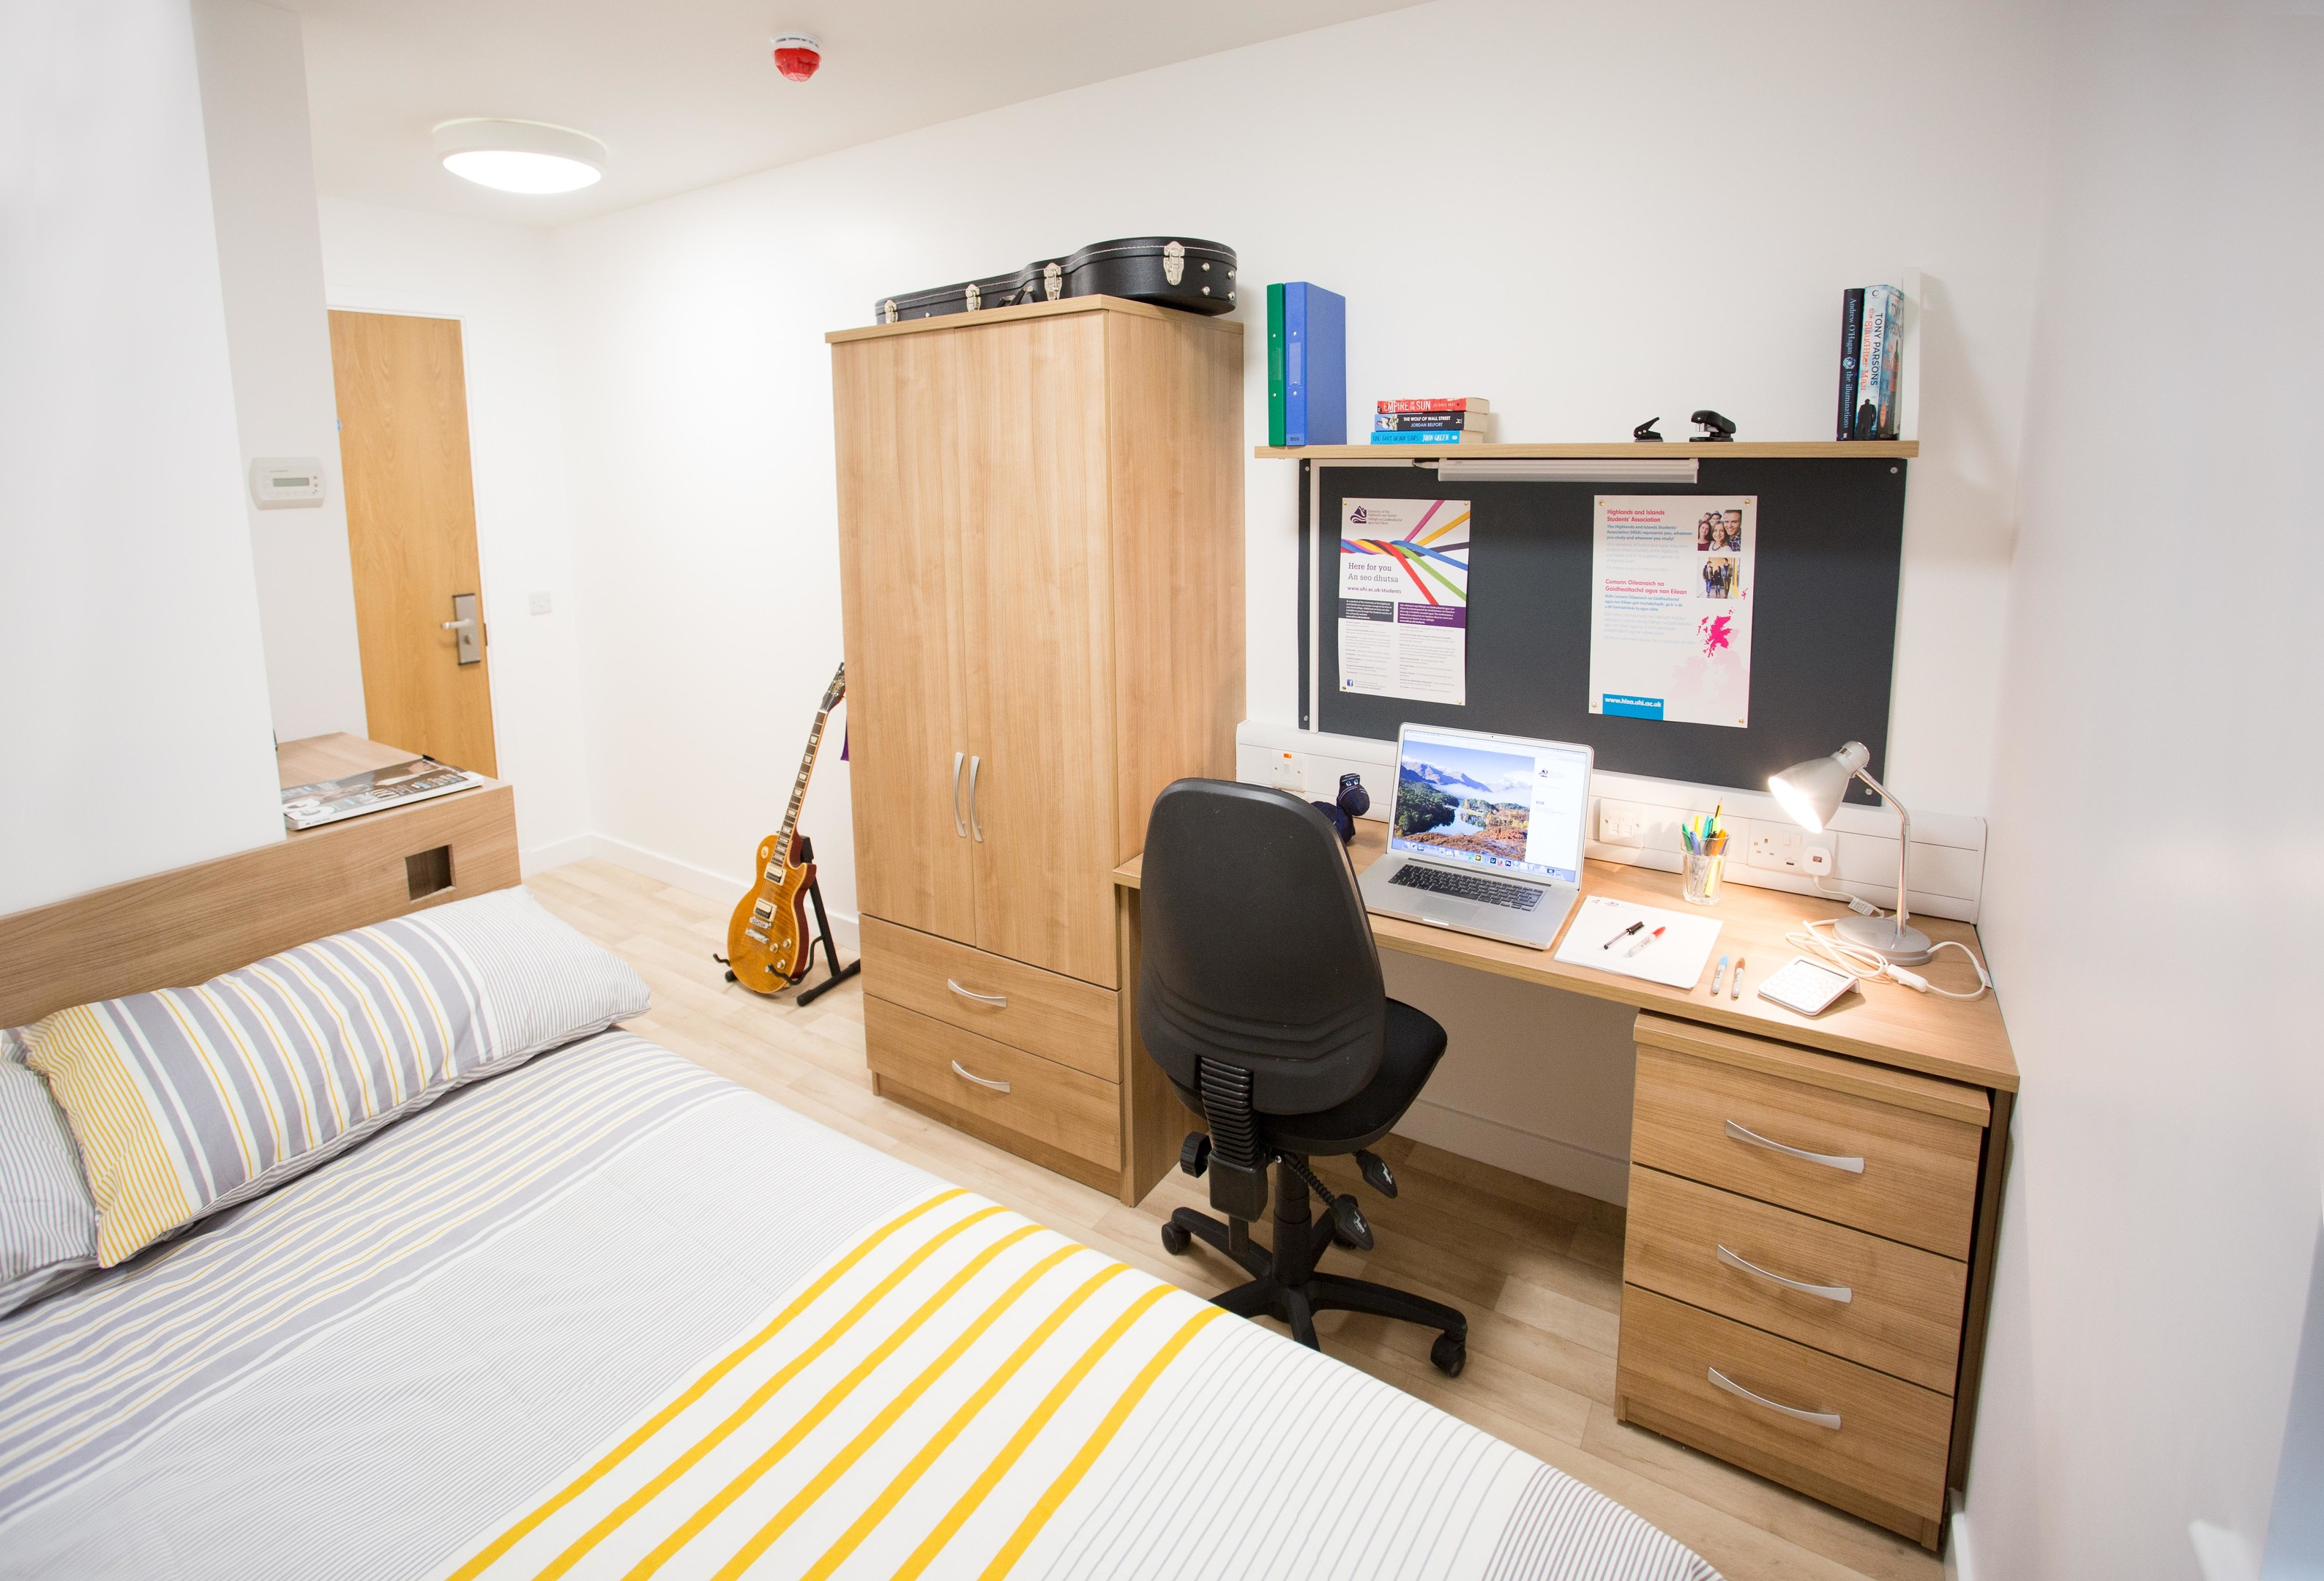 Show flat at UHI campus, owned and managed by CityHeart Living Scotland